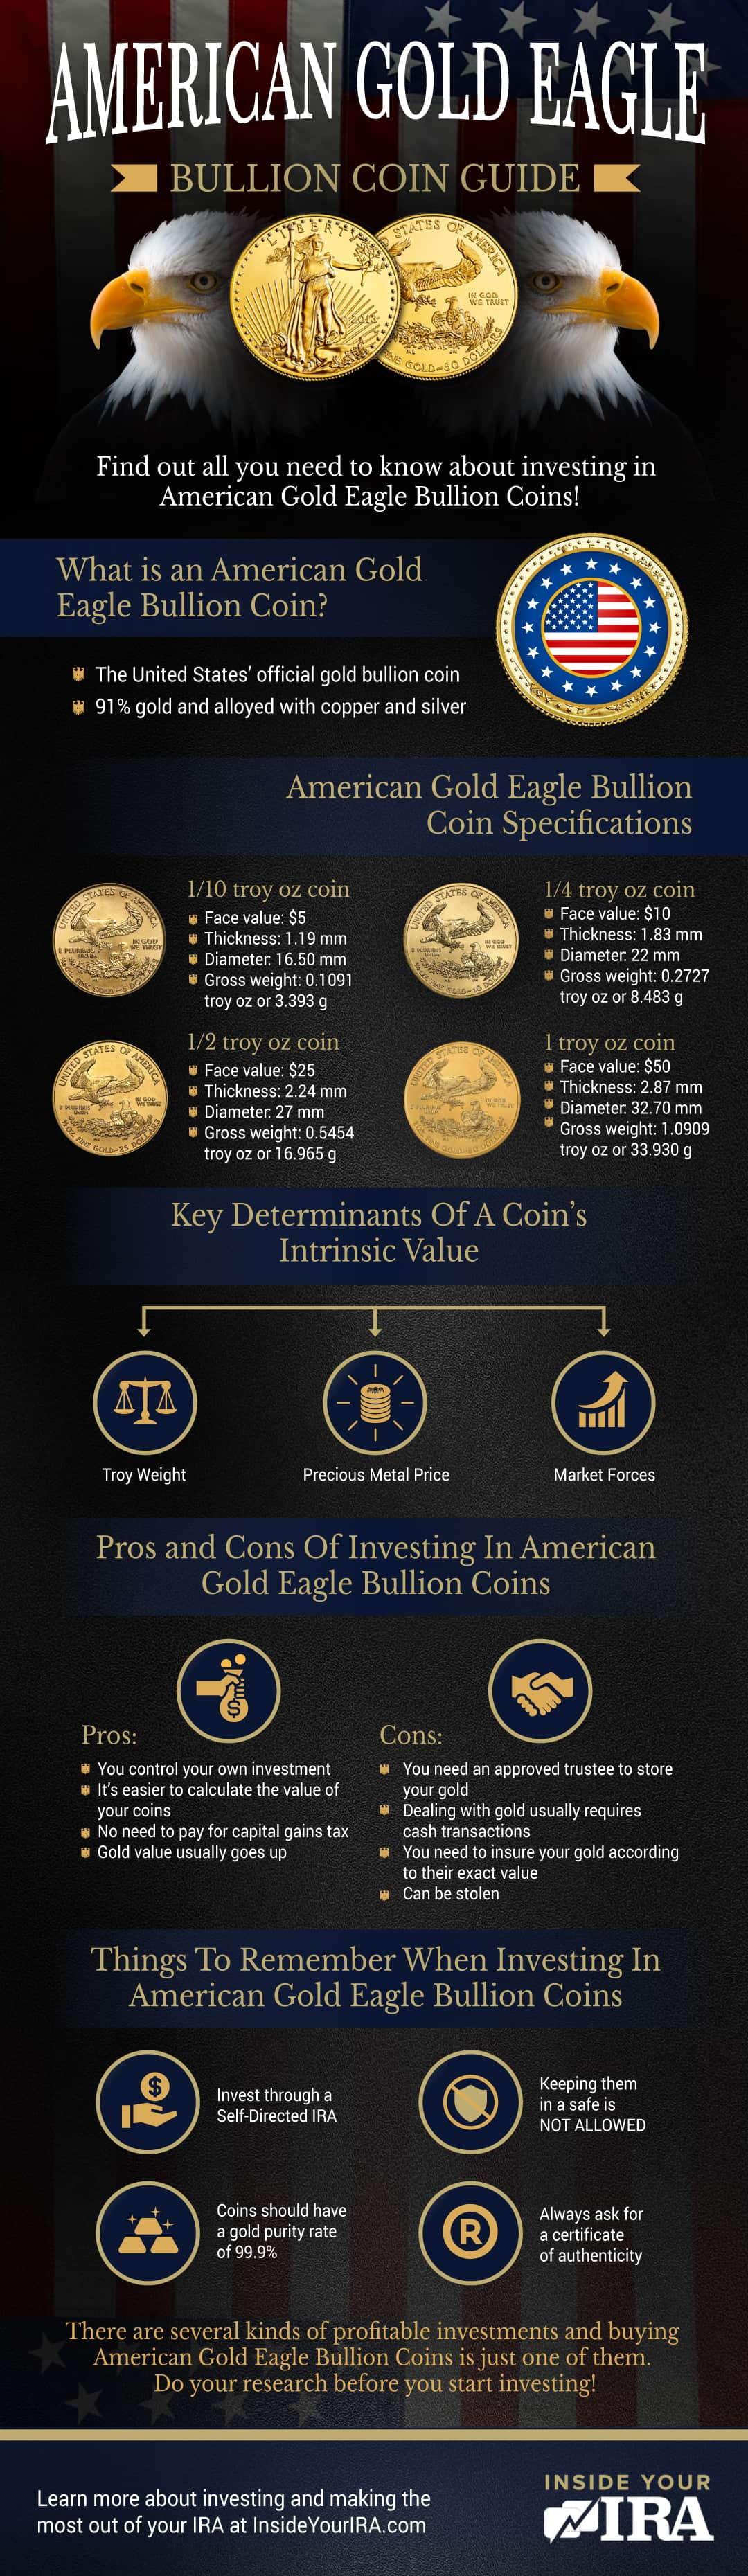 American Gold Eagle Bullion Coin Guide   Self-Directed IRA